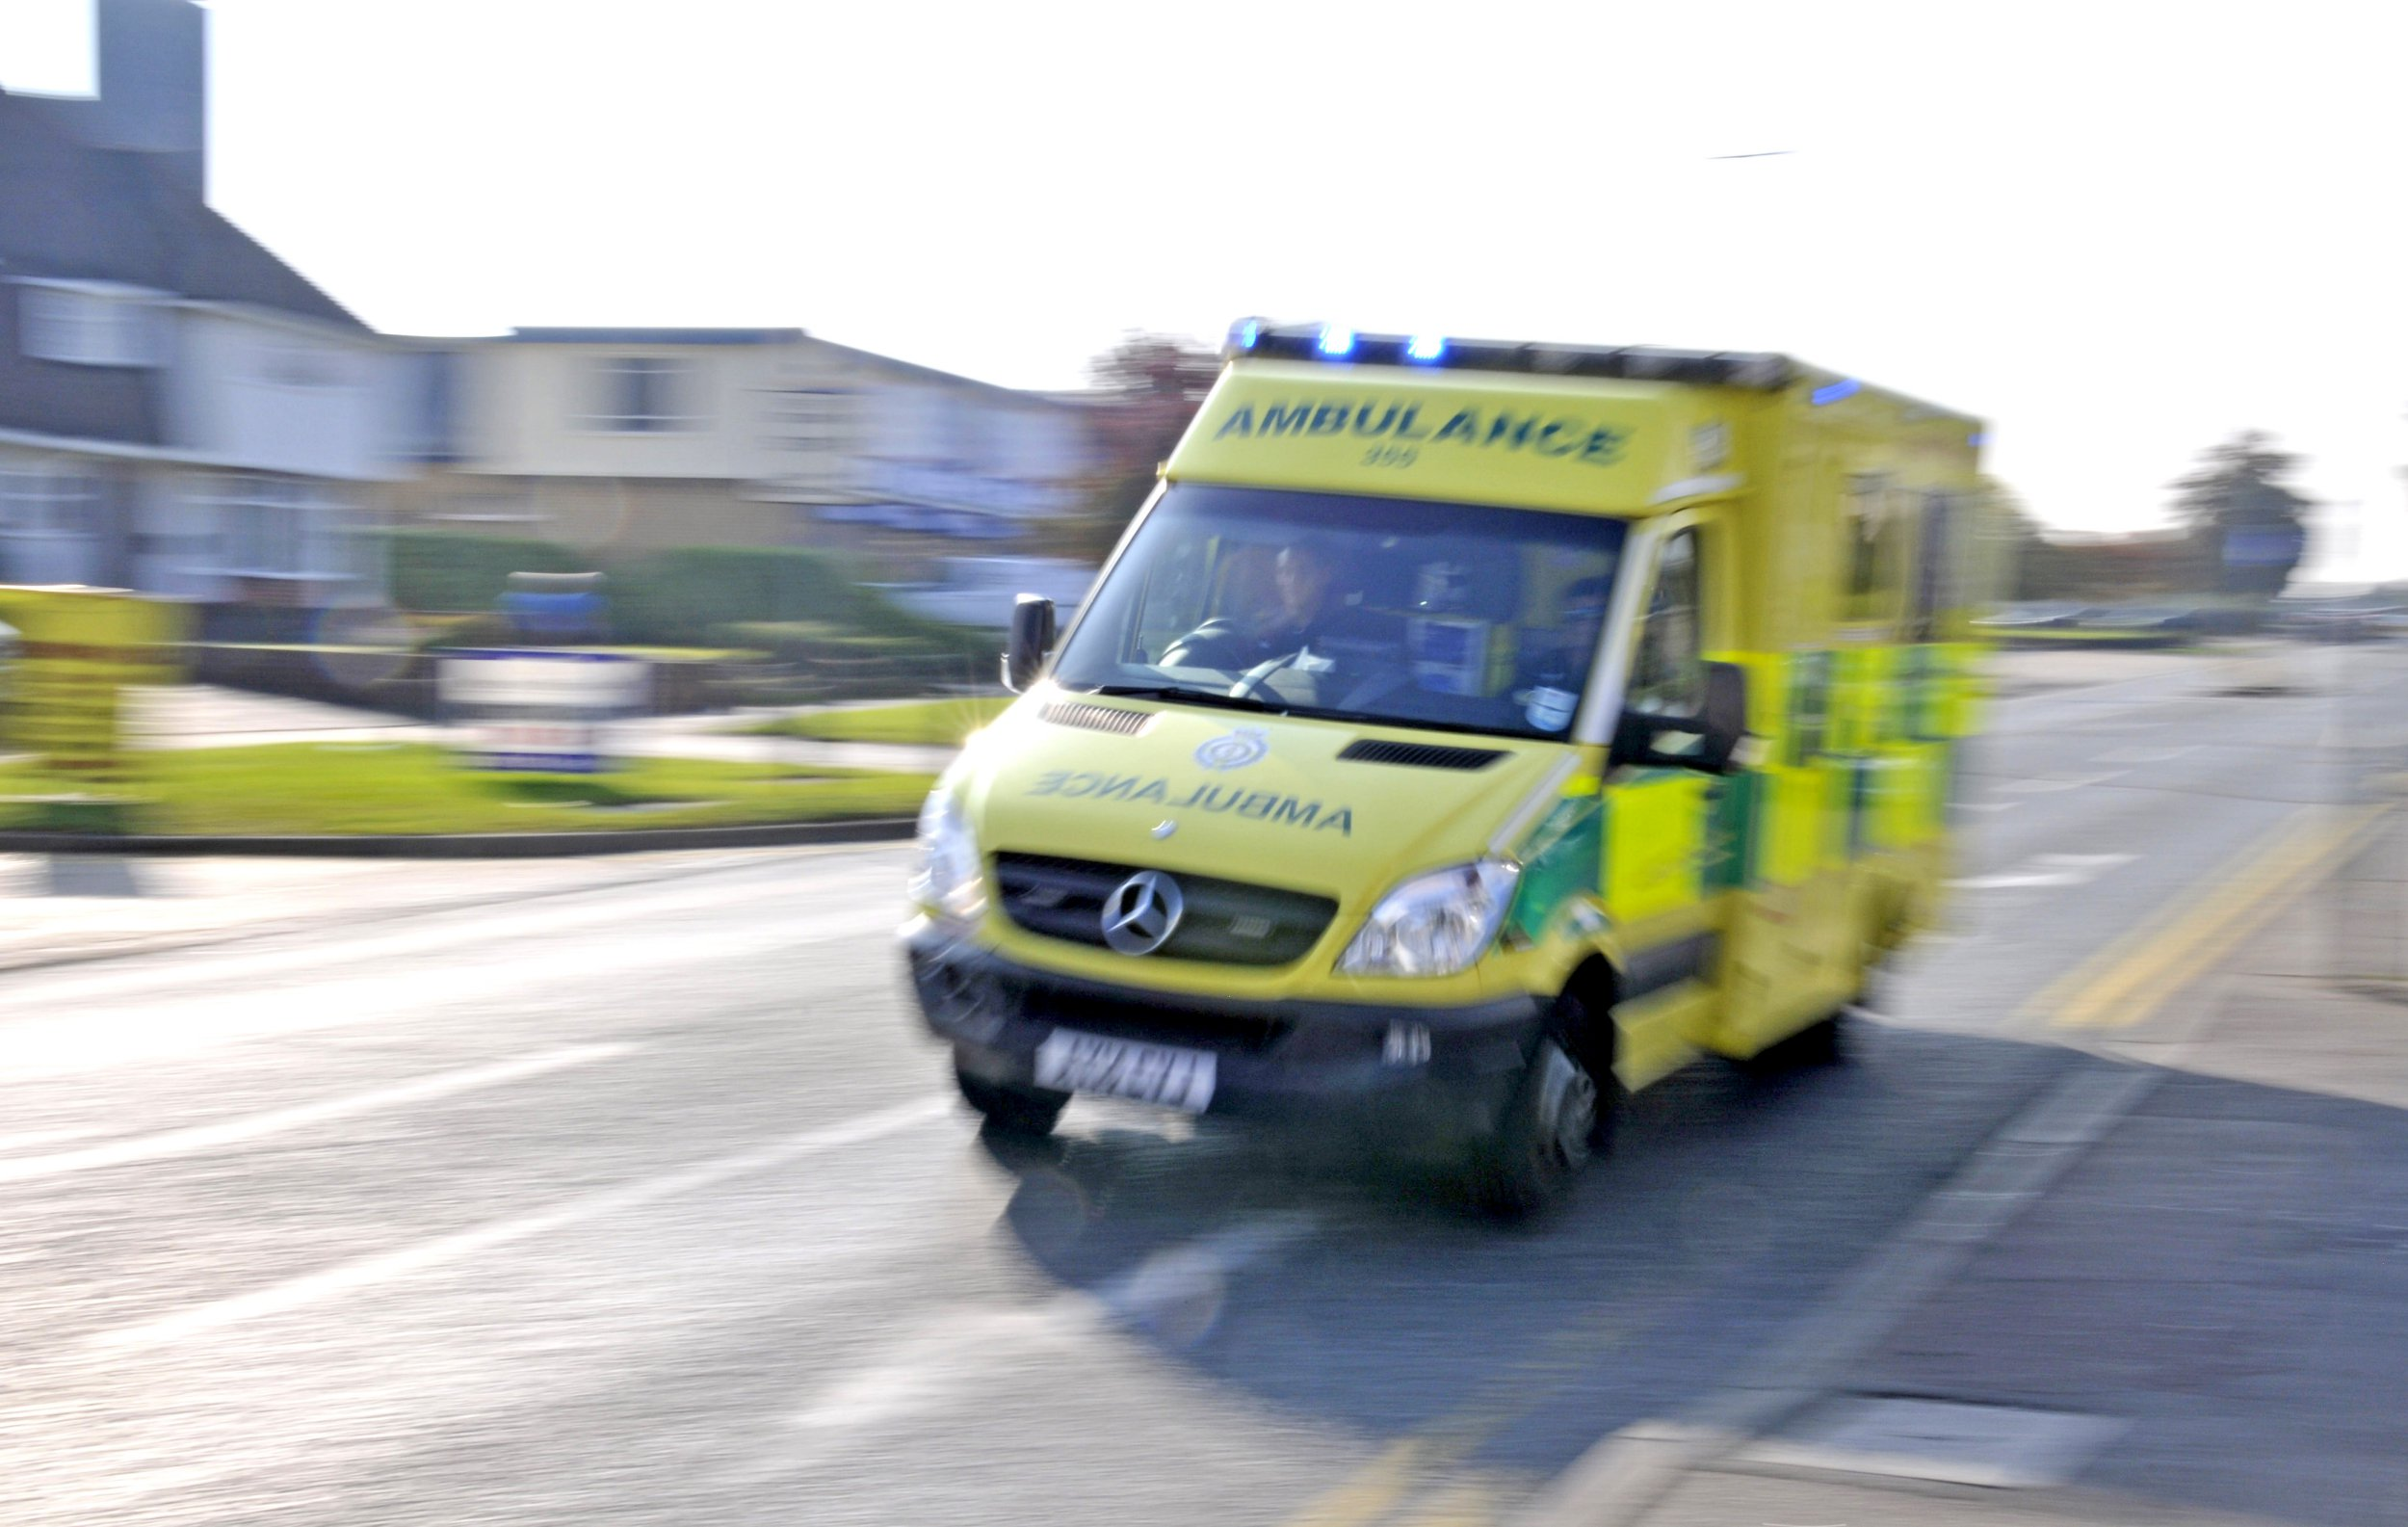 SOUTHEND ON SEA, UNITED KINGDOM - OCTOBER 04: An ambulance is seen on an emergency call on October 4, 2015 in Southend on Sea, England. (Photo by John Keeble/Getty Images)